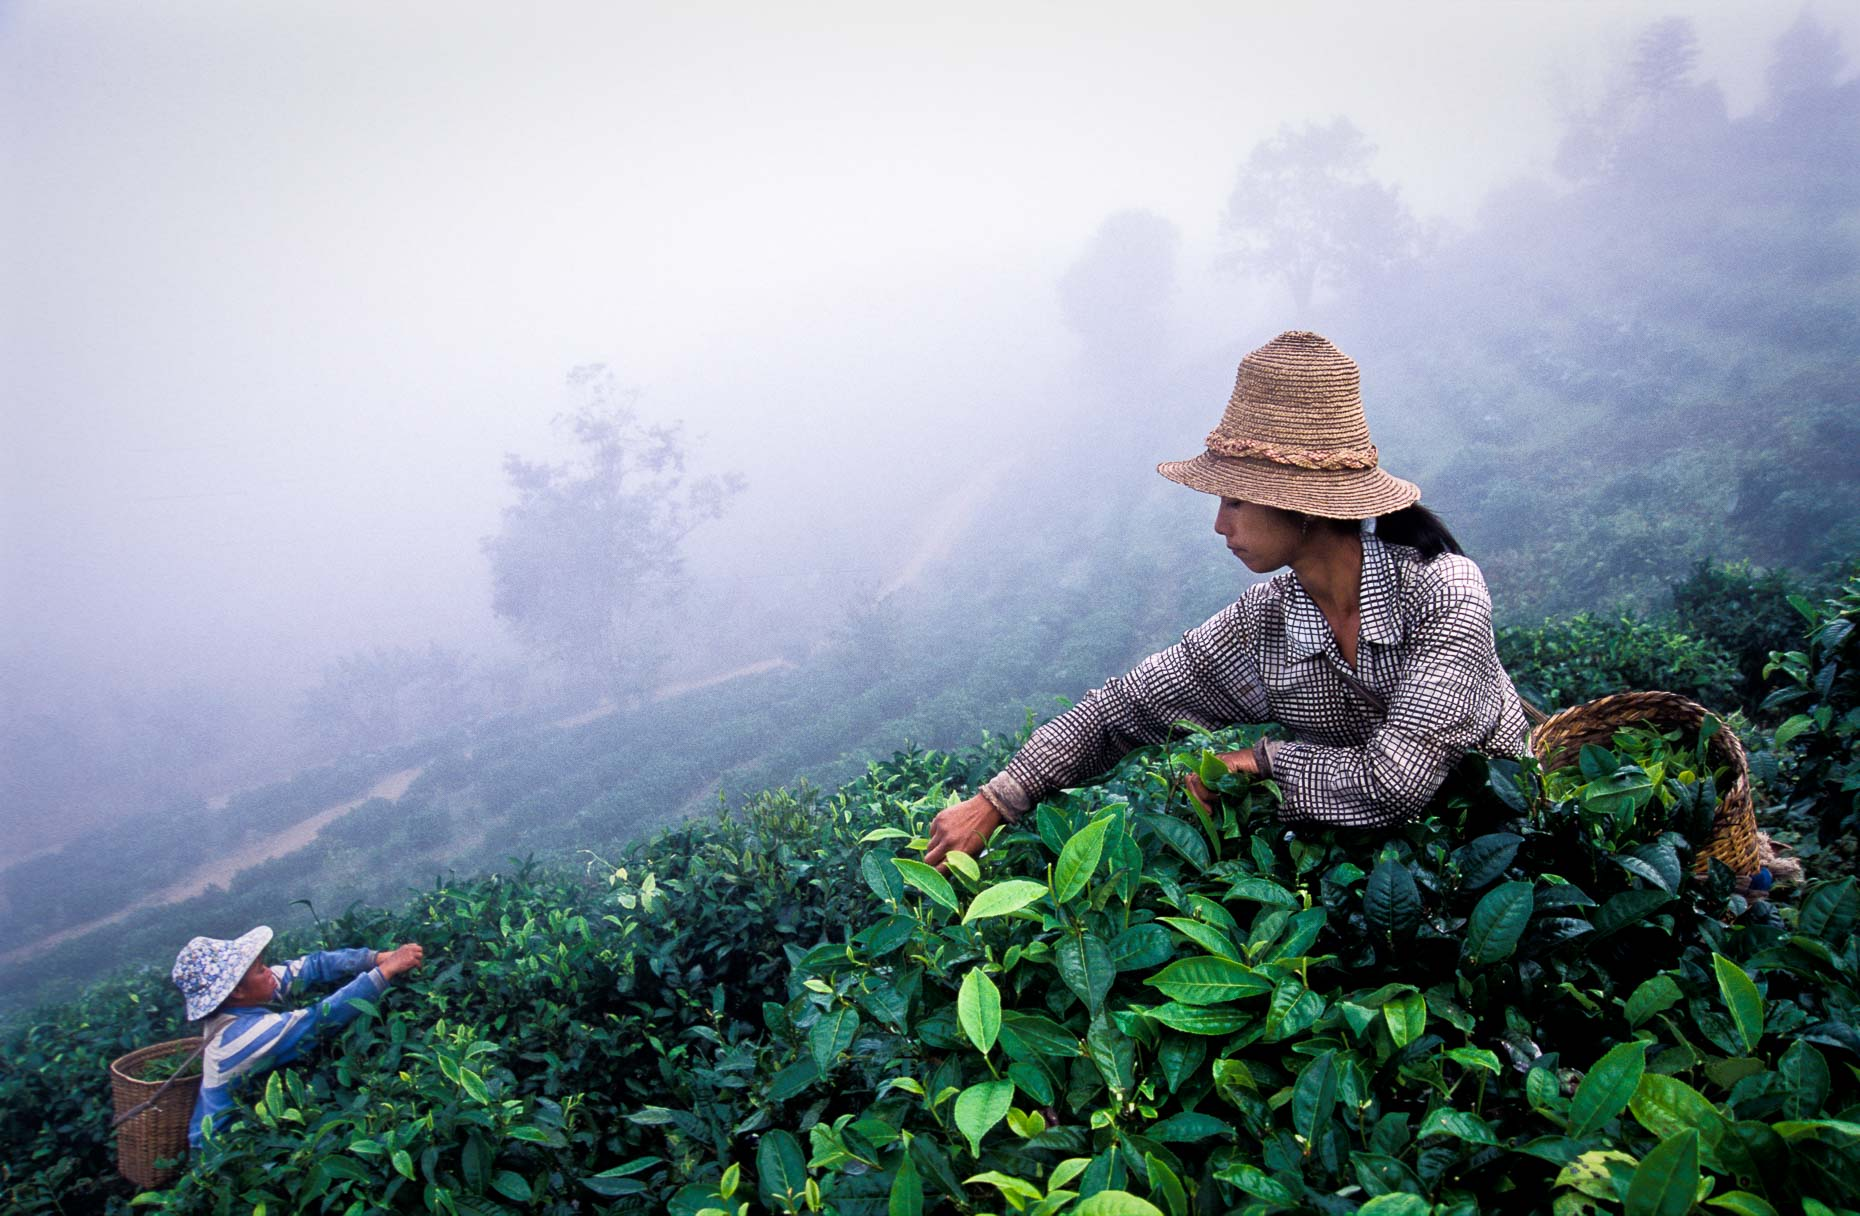 Tea picking in morning mist